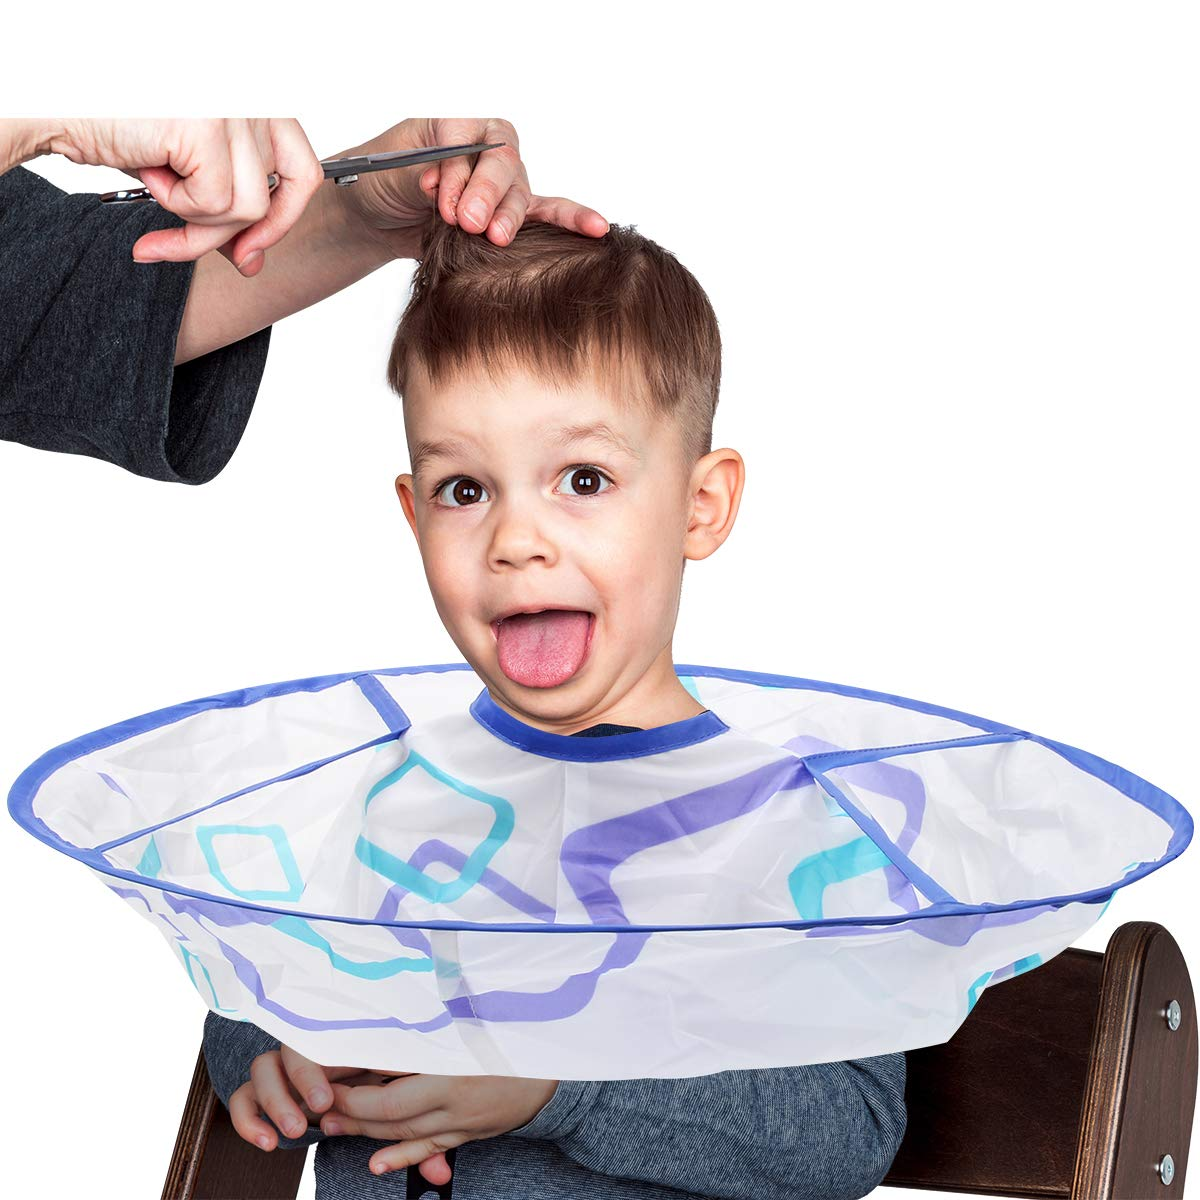 Kids Haircut Cape Hair Cutting Time sale for Umbrella Cap sold out Barber